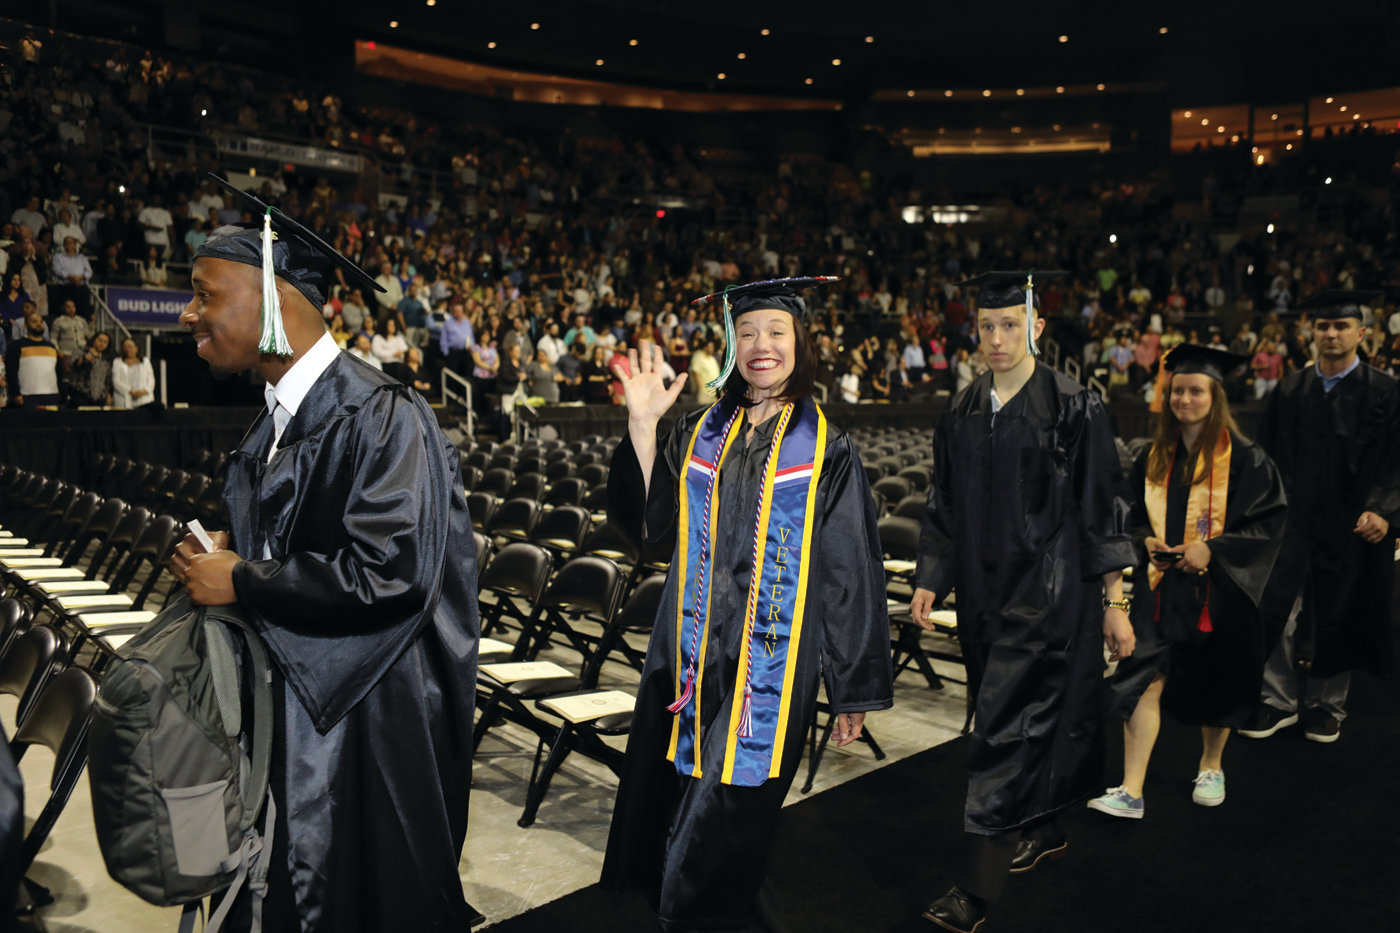 REASON TO SMILE: CCRI graduates proceed into the Dunkin' Donuts Center before receiving their degrees during the college's 54th commencement ceremony.